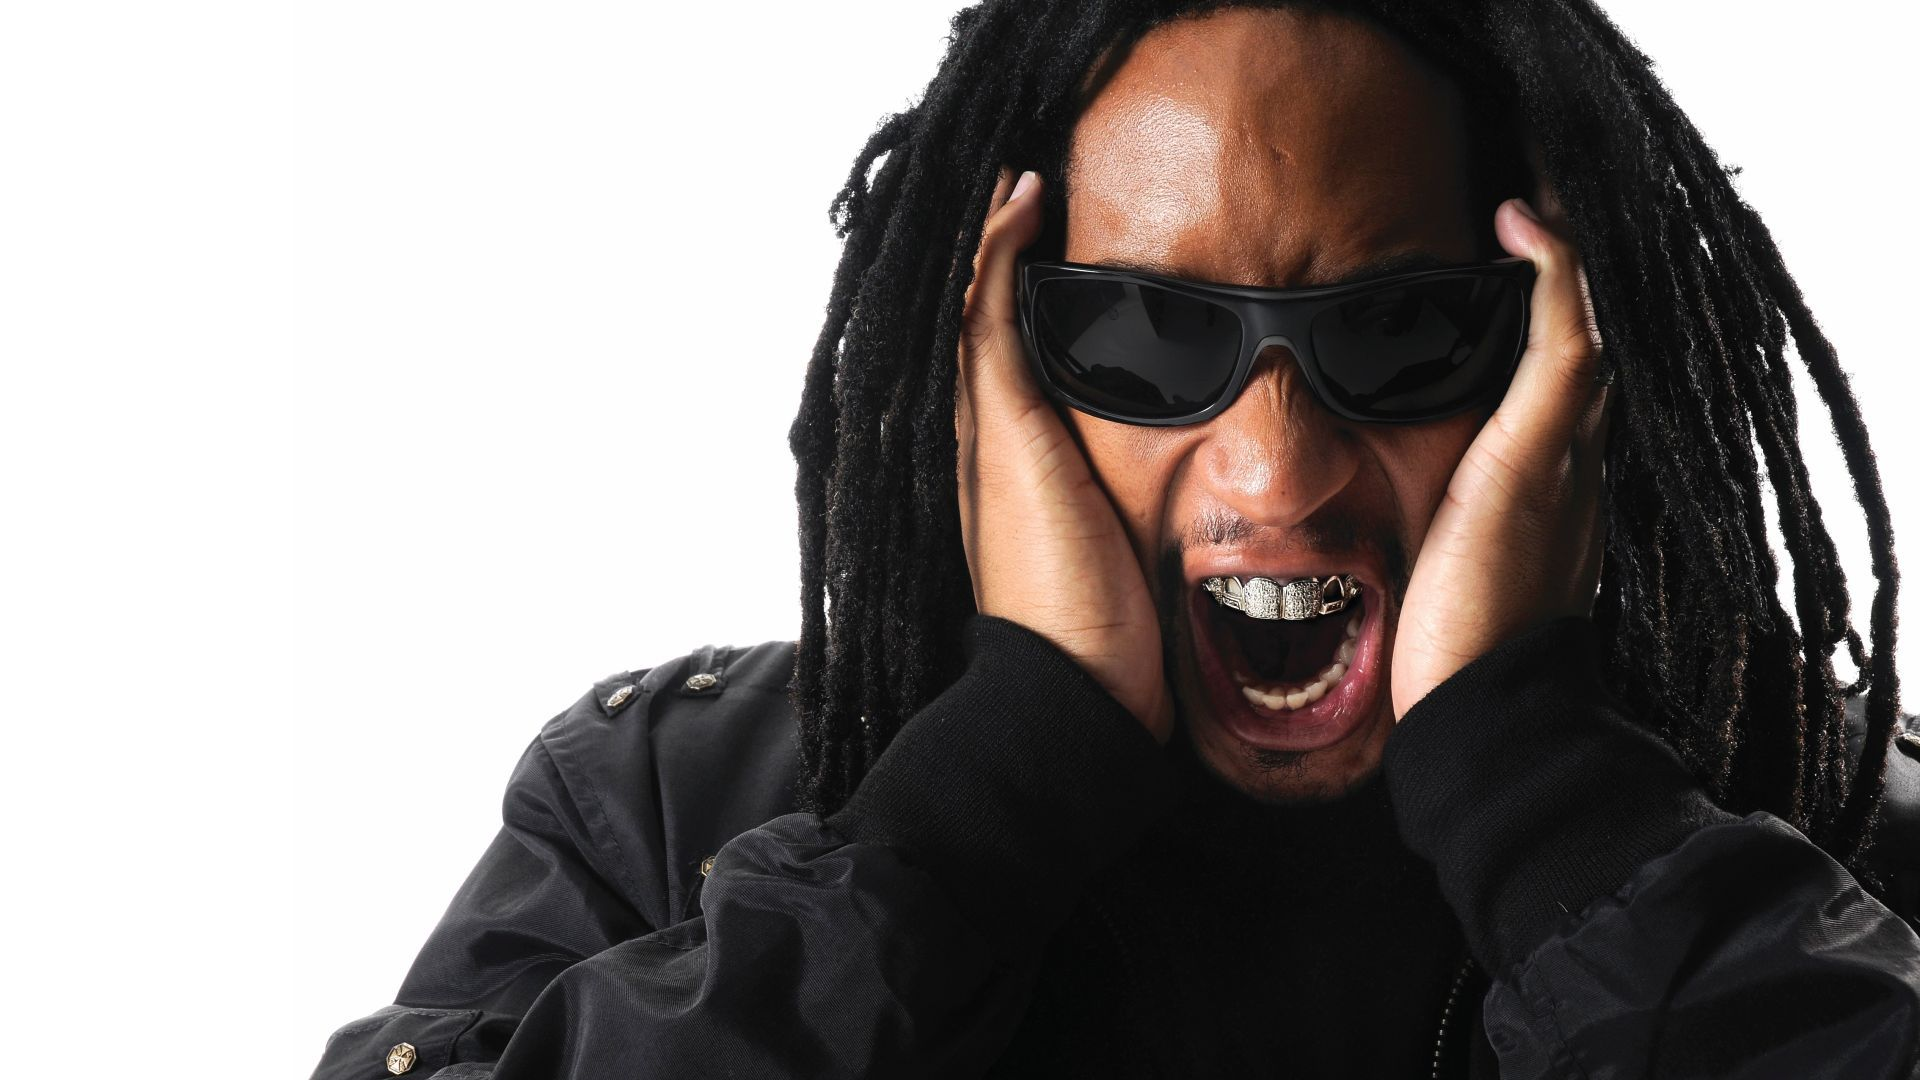 Lil Jon Wallpapers Images Photos Pictures Backgrounds 1920x1080